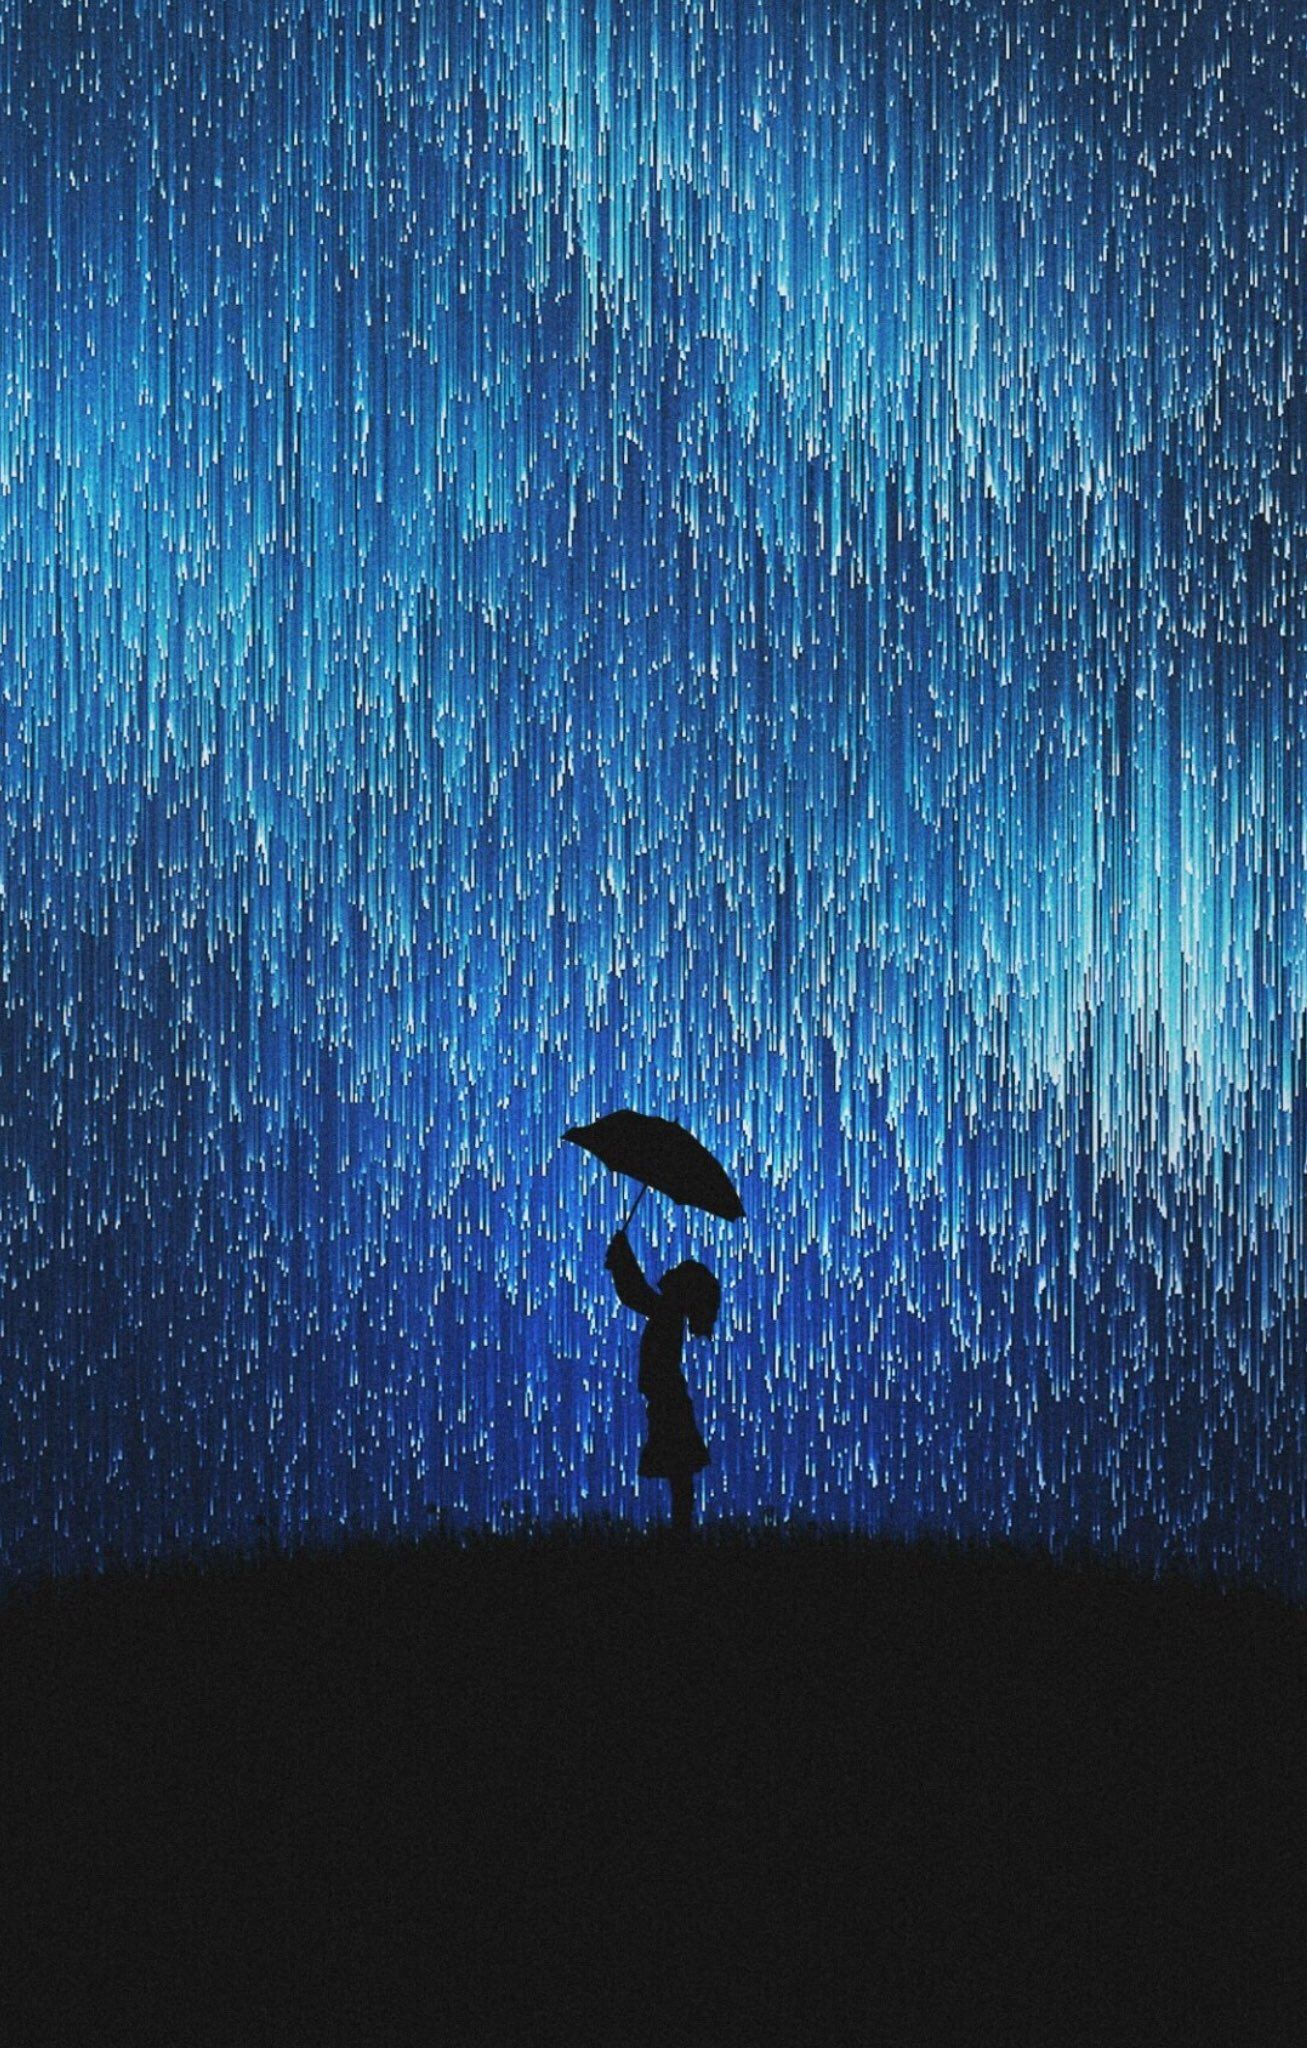 Blue Sign On In 2020 Rain Wallpapers Girl In Rain Painting